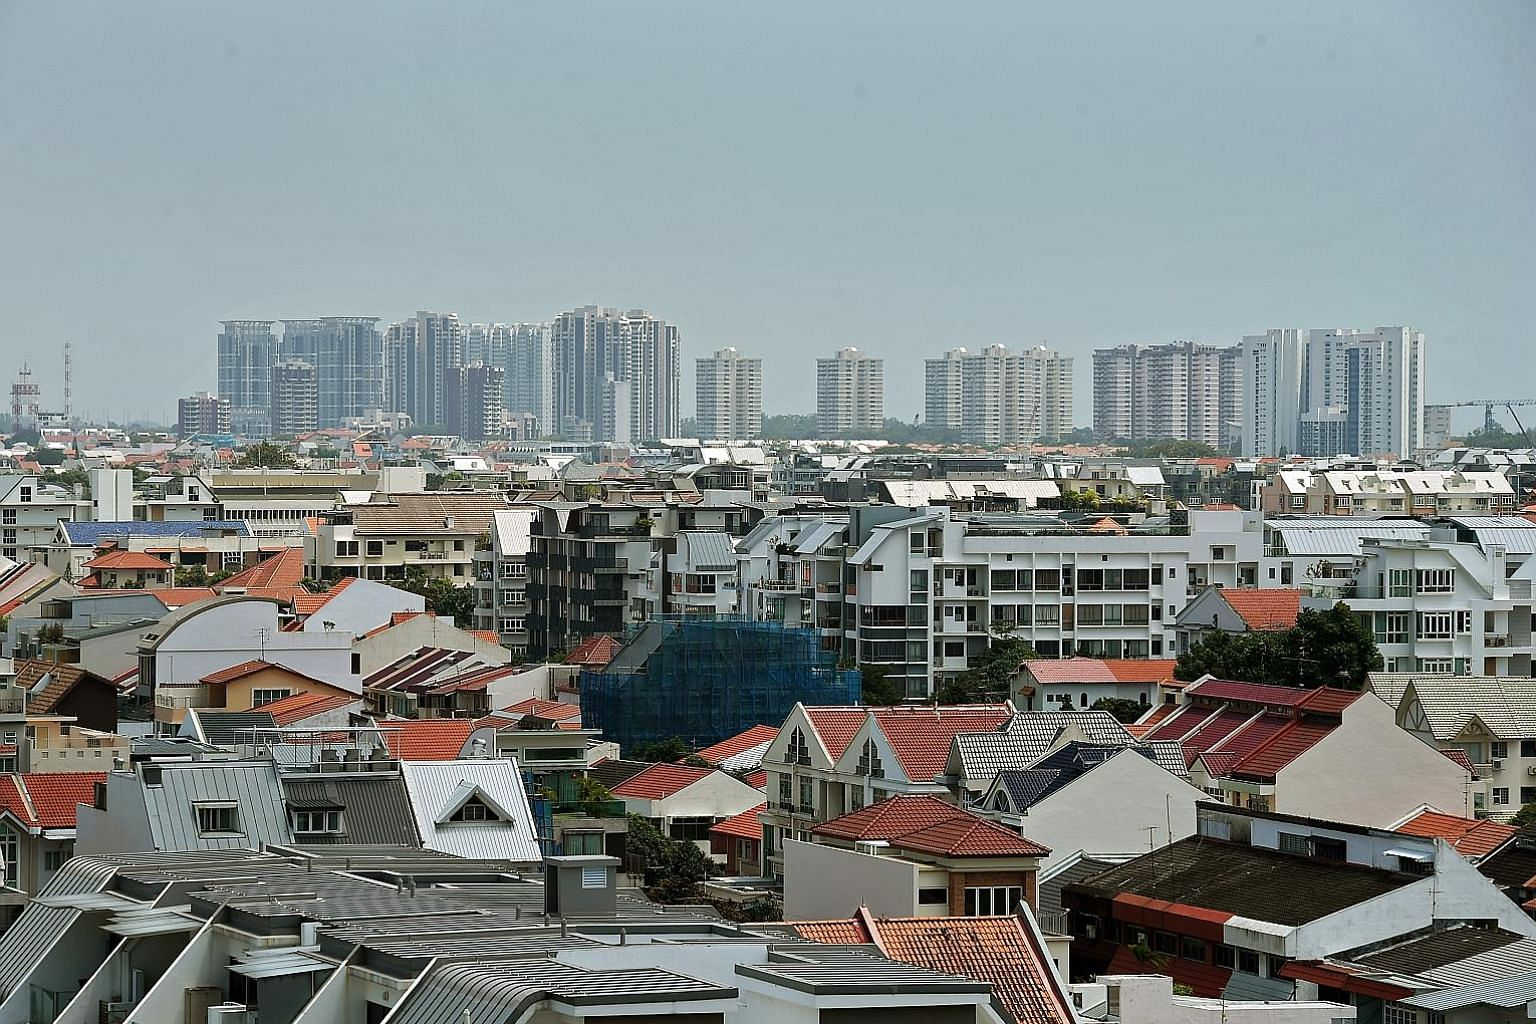 The Monetary Authority of Singapore noted that the number of unsold homes from launched projects - excluding executive condominiums - doubled from 2,172 units in the third quarter of last year to 4,377 units in the same three months this year.